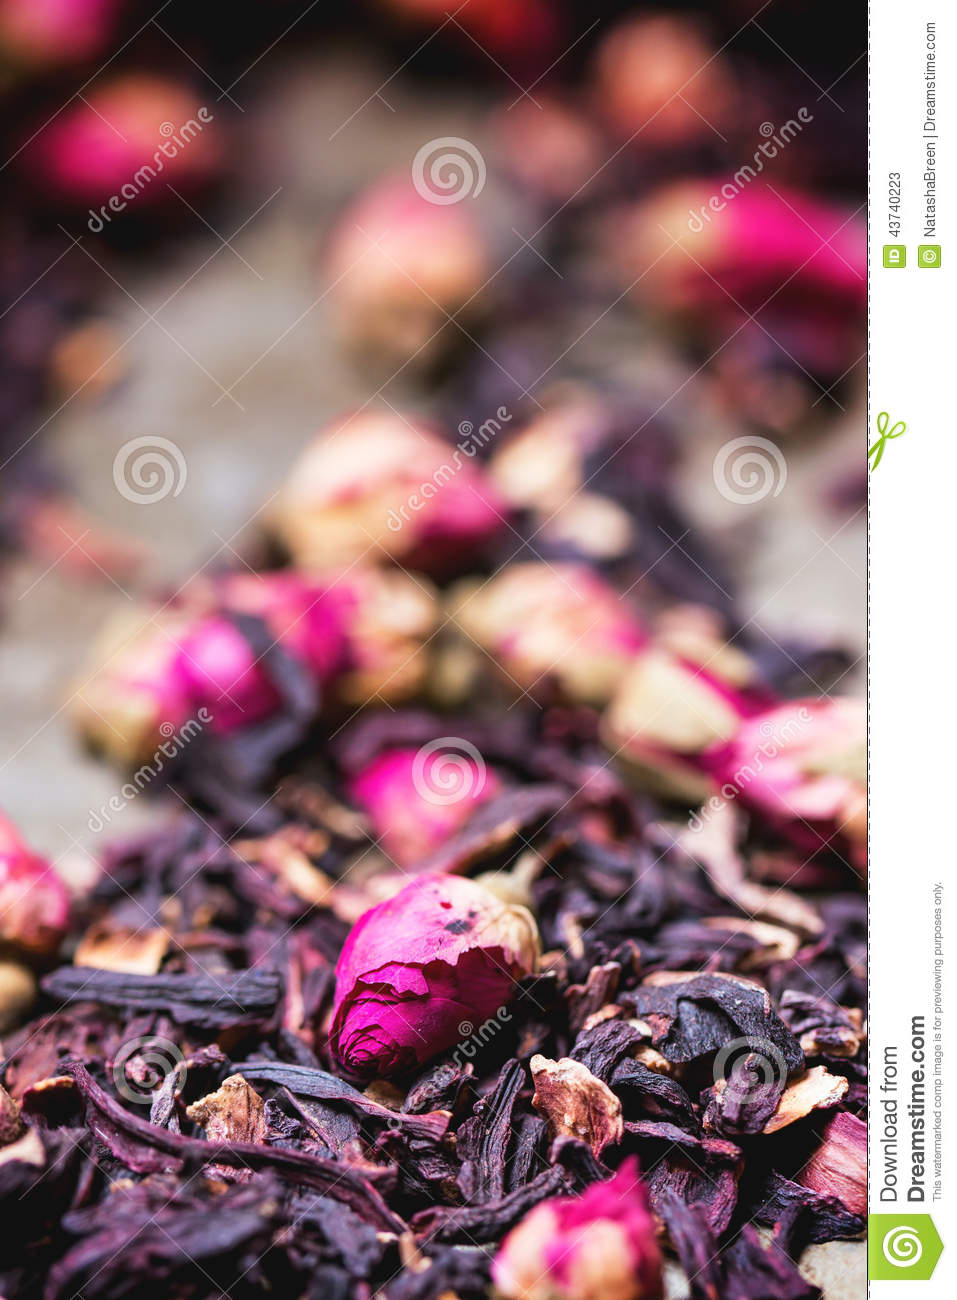 Tea roses and dried hibiscus flower stock image image of tea roses and dried hibiscus flower background blossom izmirmasajfo